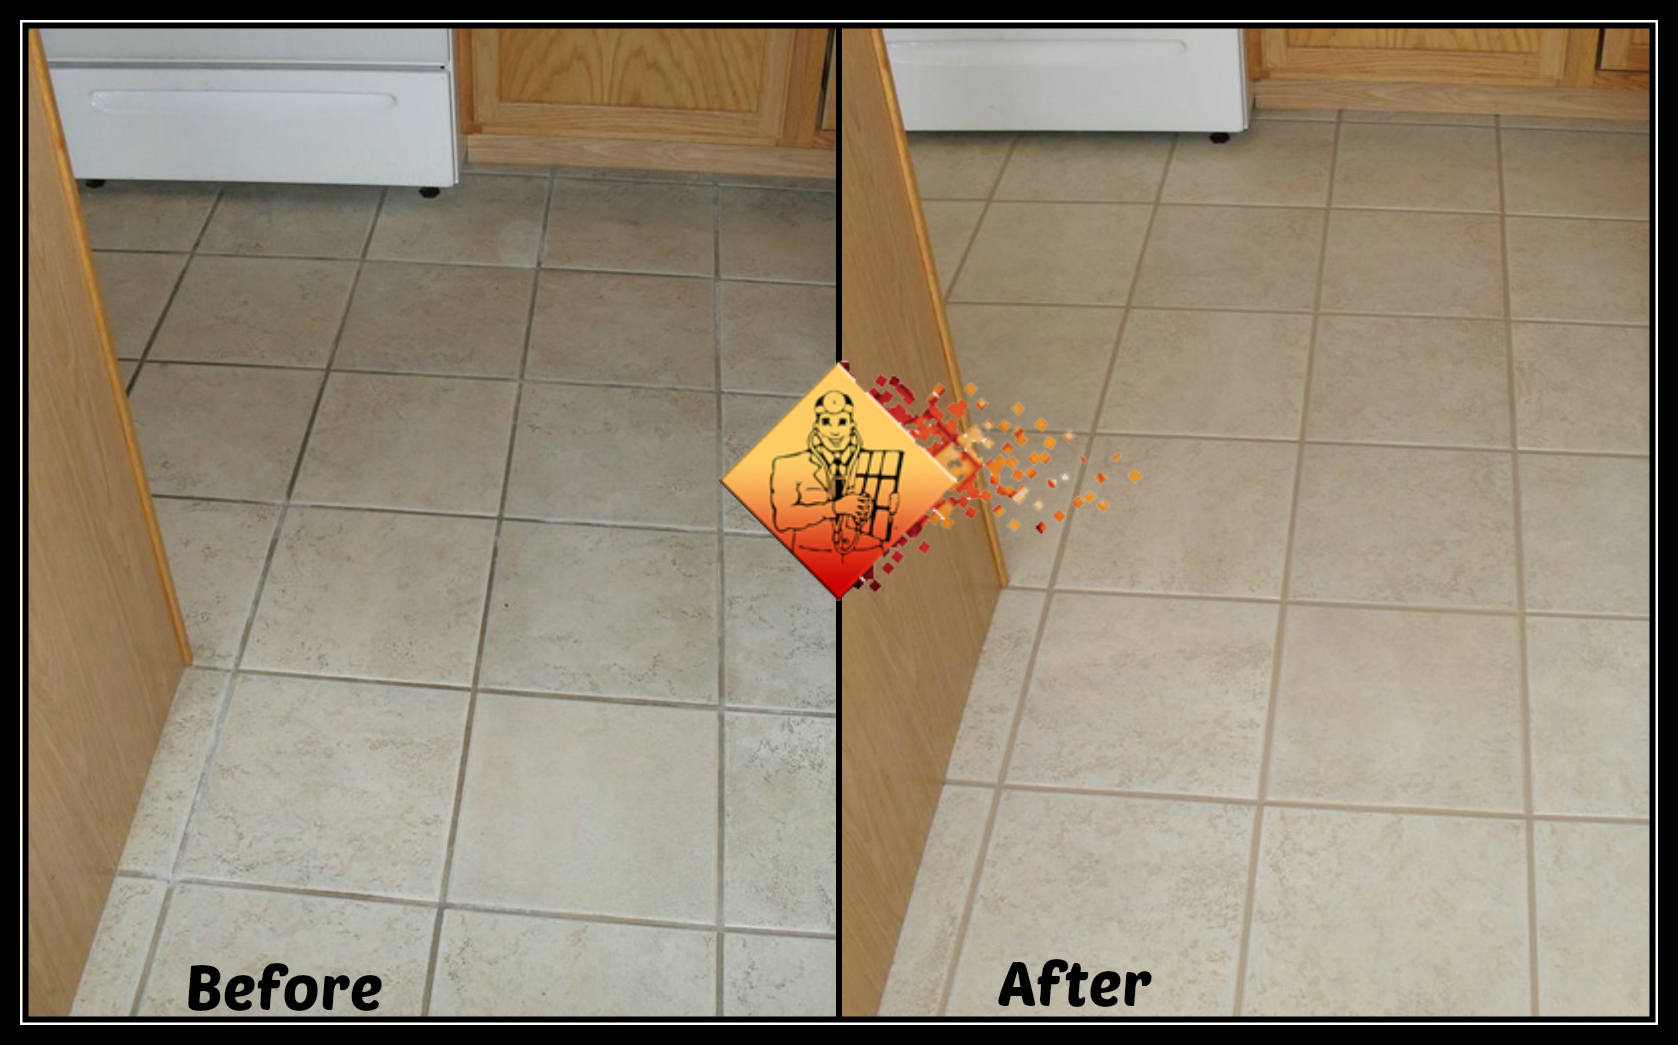 Kitchen floor grout before u after cleaning u recoloring the grout